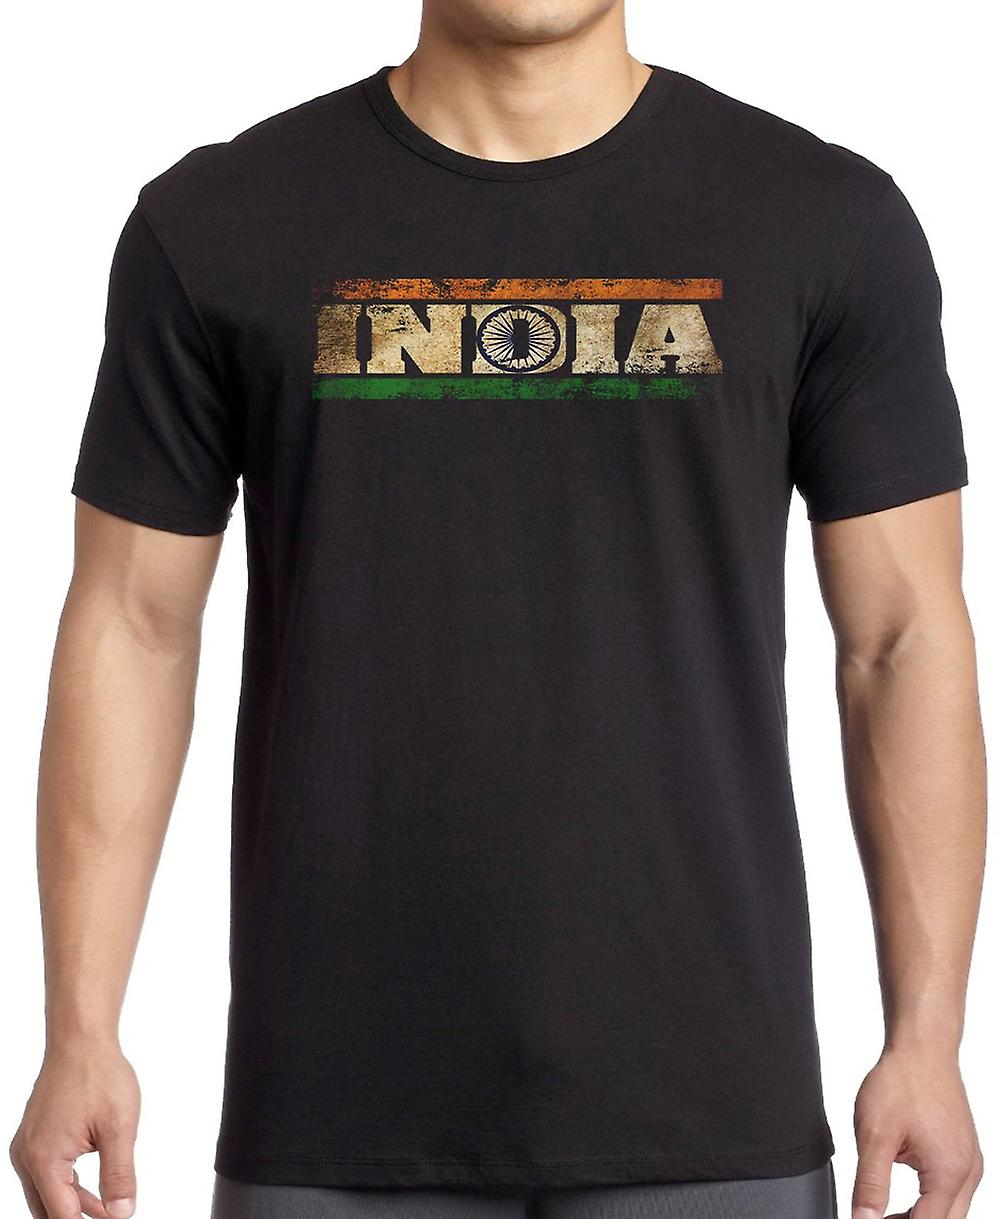 Bandierina indiana dell'India - parole bambini T Shirt